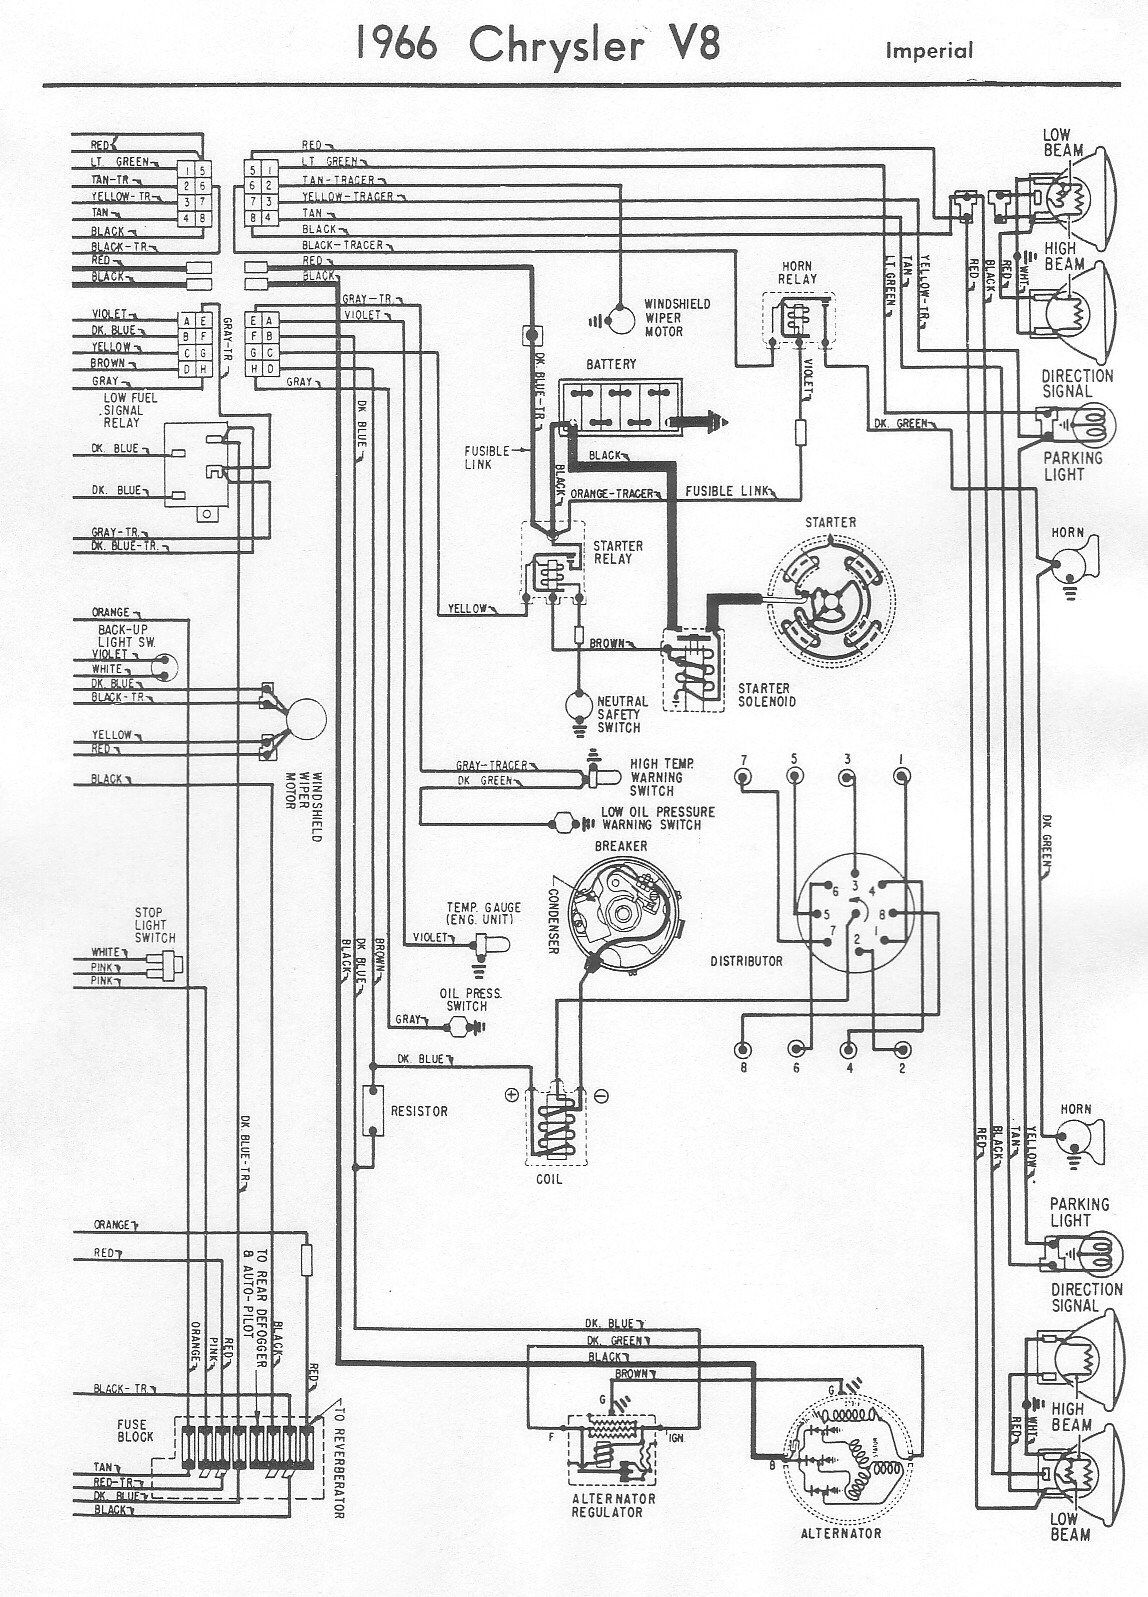 85 Camaro Dash Wiring Diagram Schematic Auto Electrical Wiring Diagram  Chrysler 300 Wiring Diagram Headlights 1968 Chrysler 300 Wiring Diagram